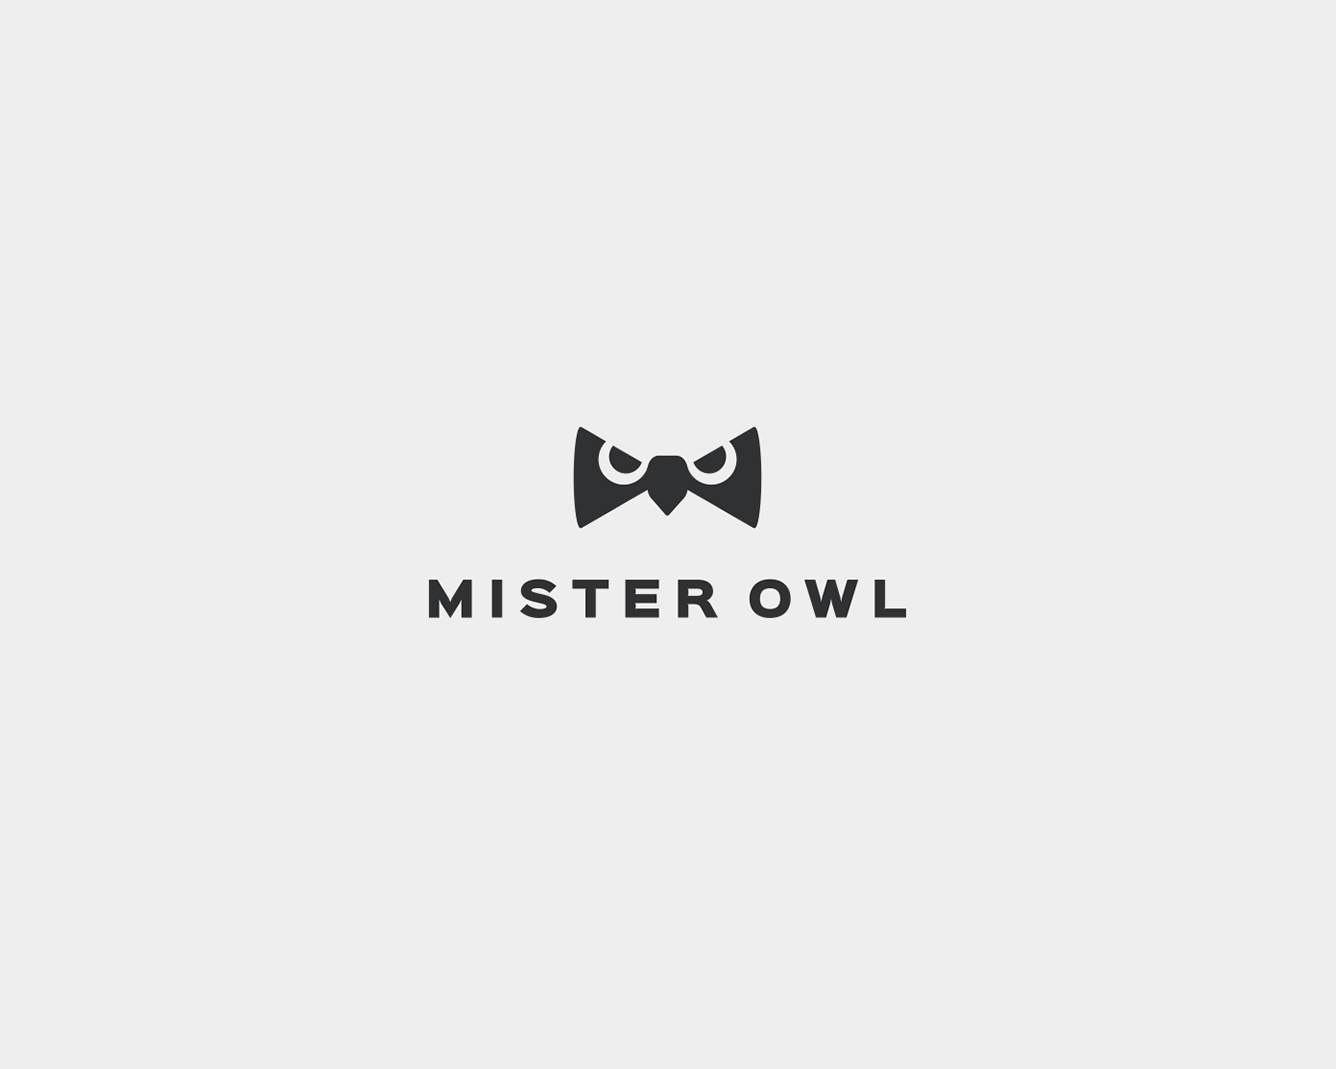 Designer creates logos with hidden meanings - 8